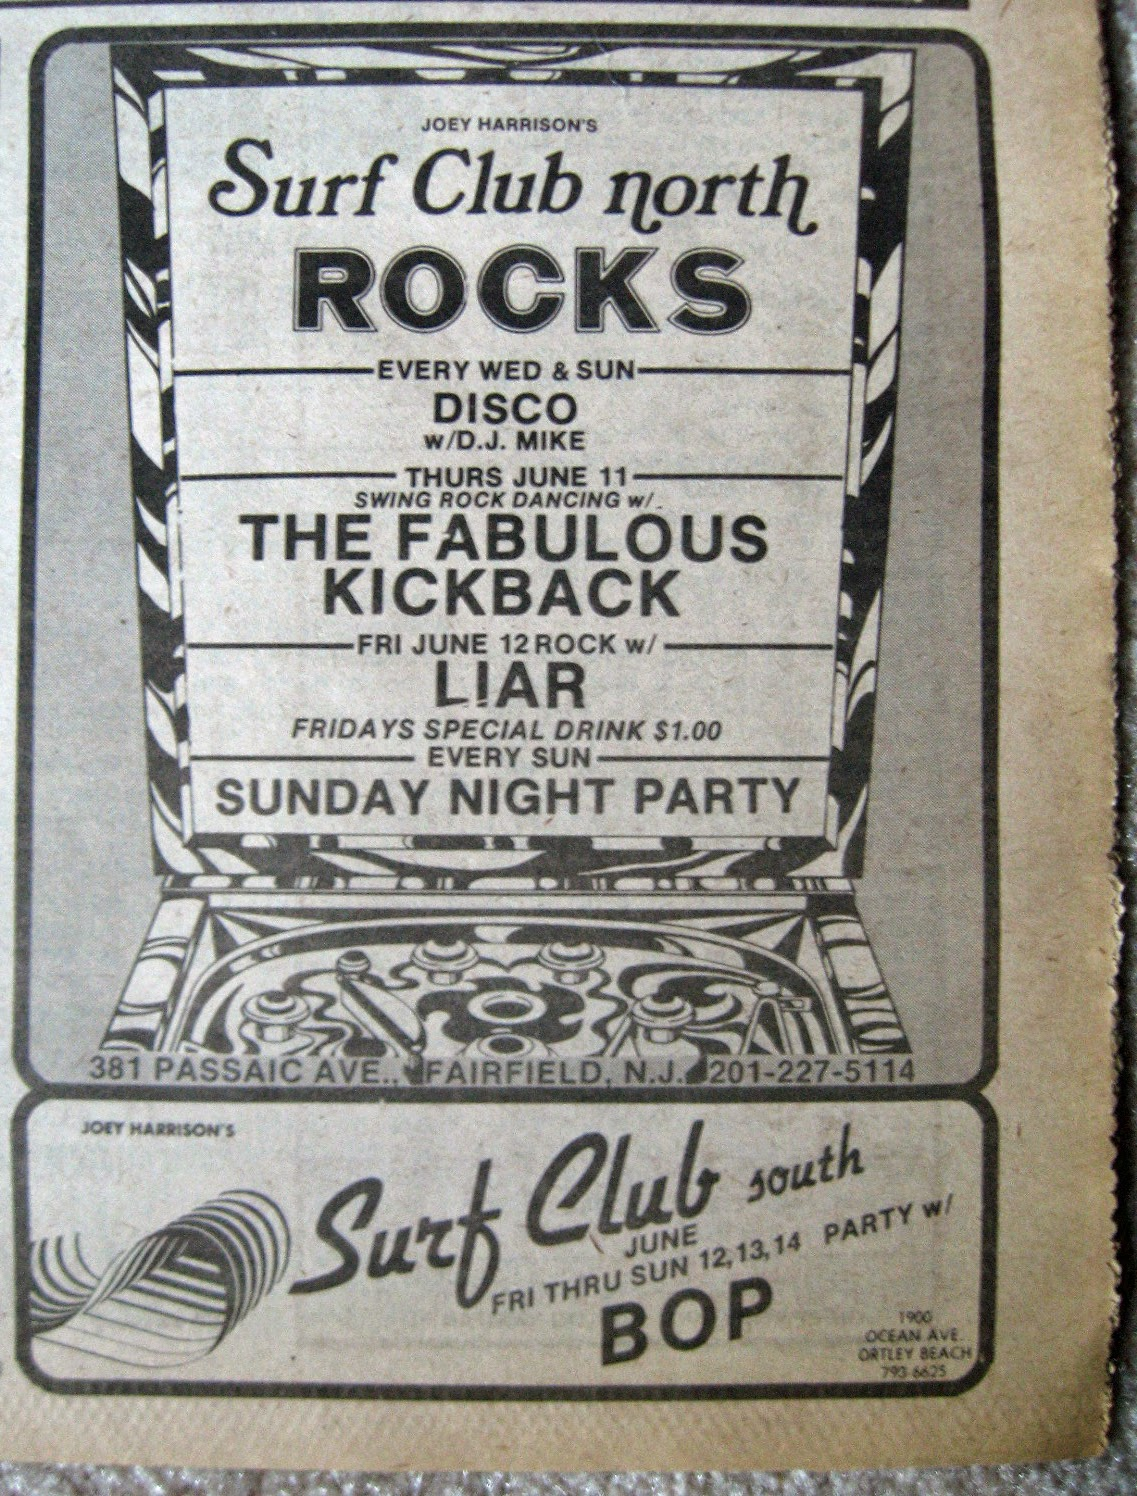 The Surf Club North band line up 1981